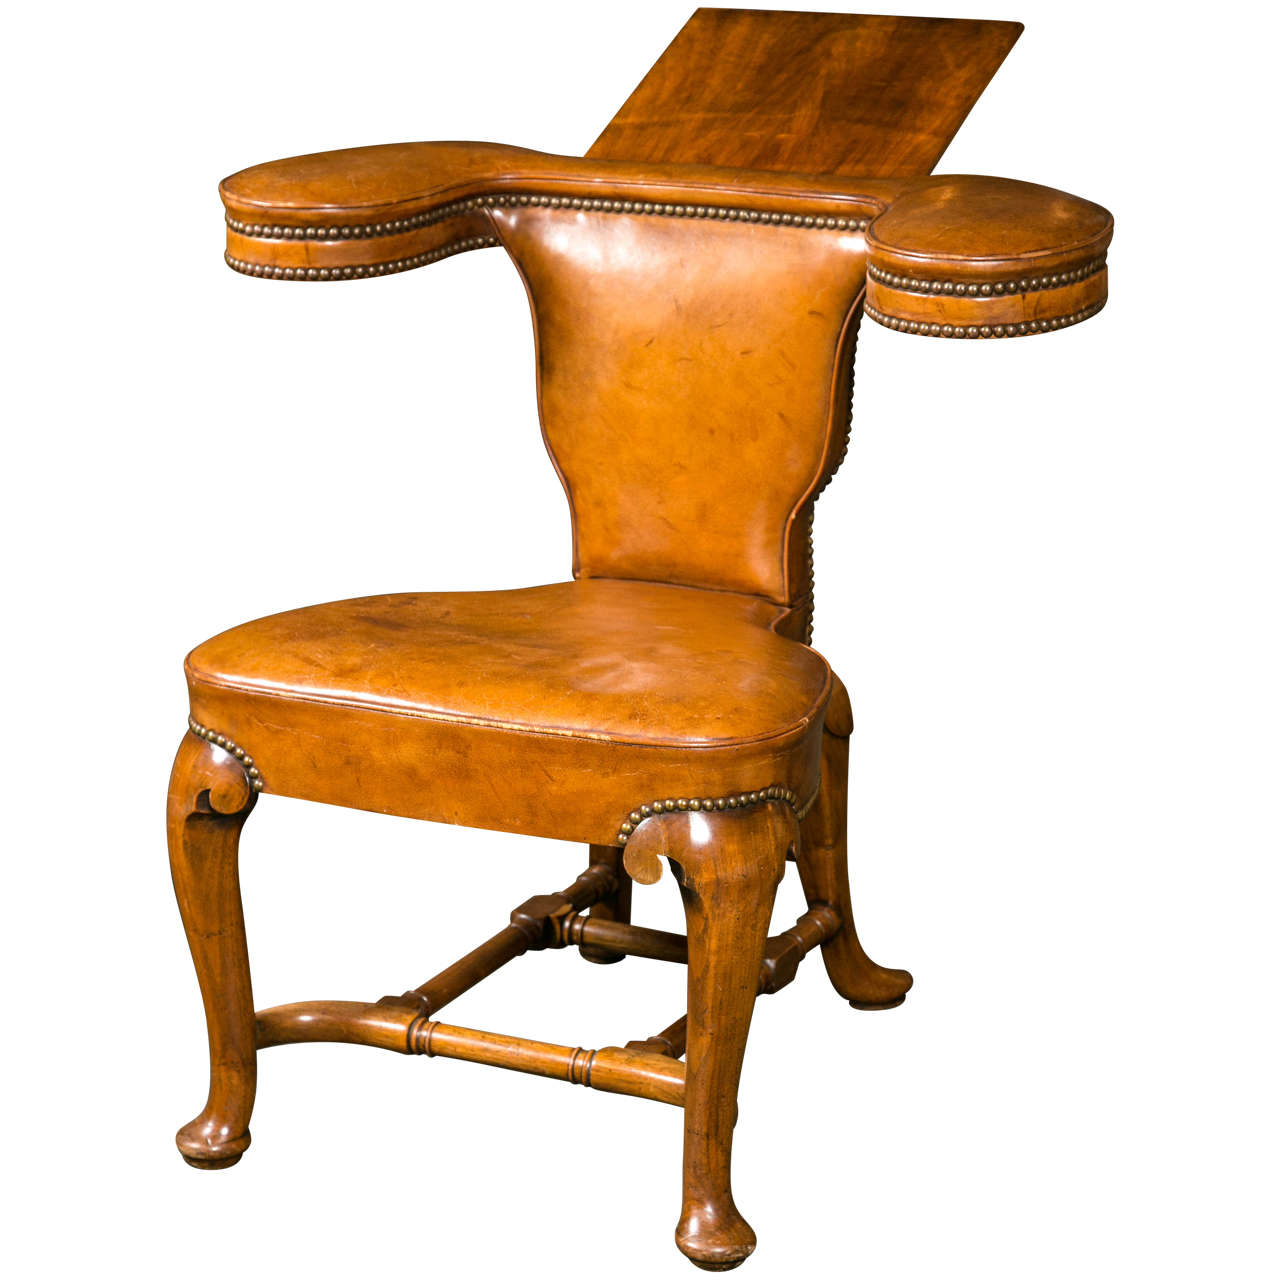 th century english reading chair . th century english reading chair for sale at stdibs